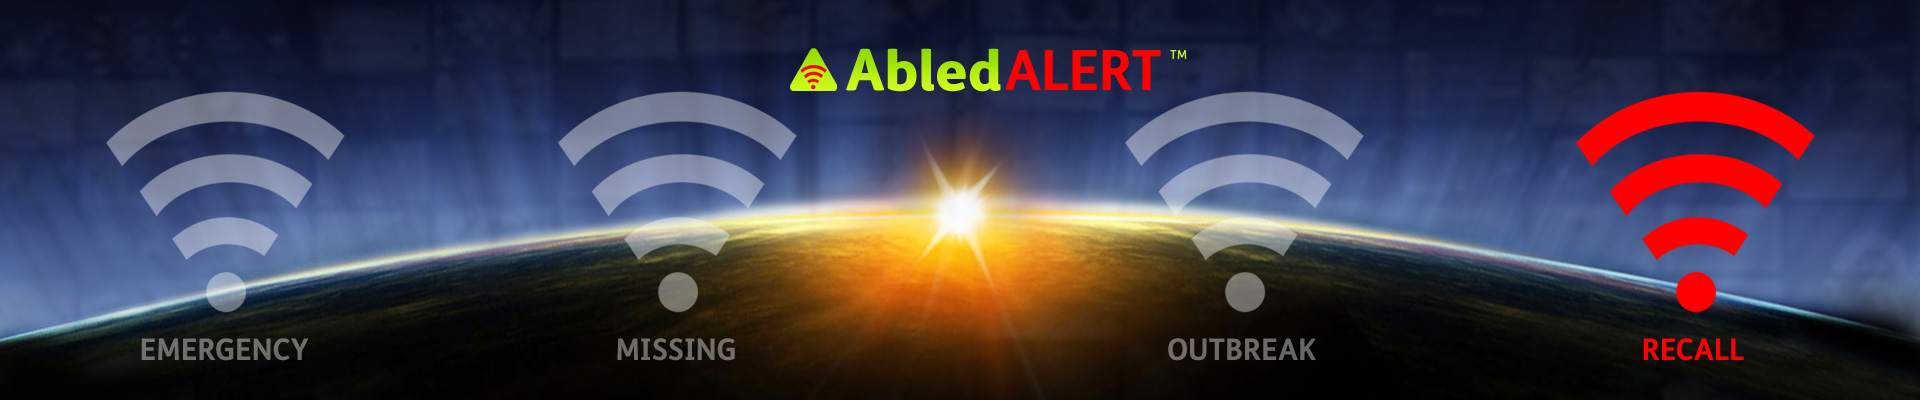 AbledALert Banner with the alert signal for RECALL highlighted.